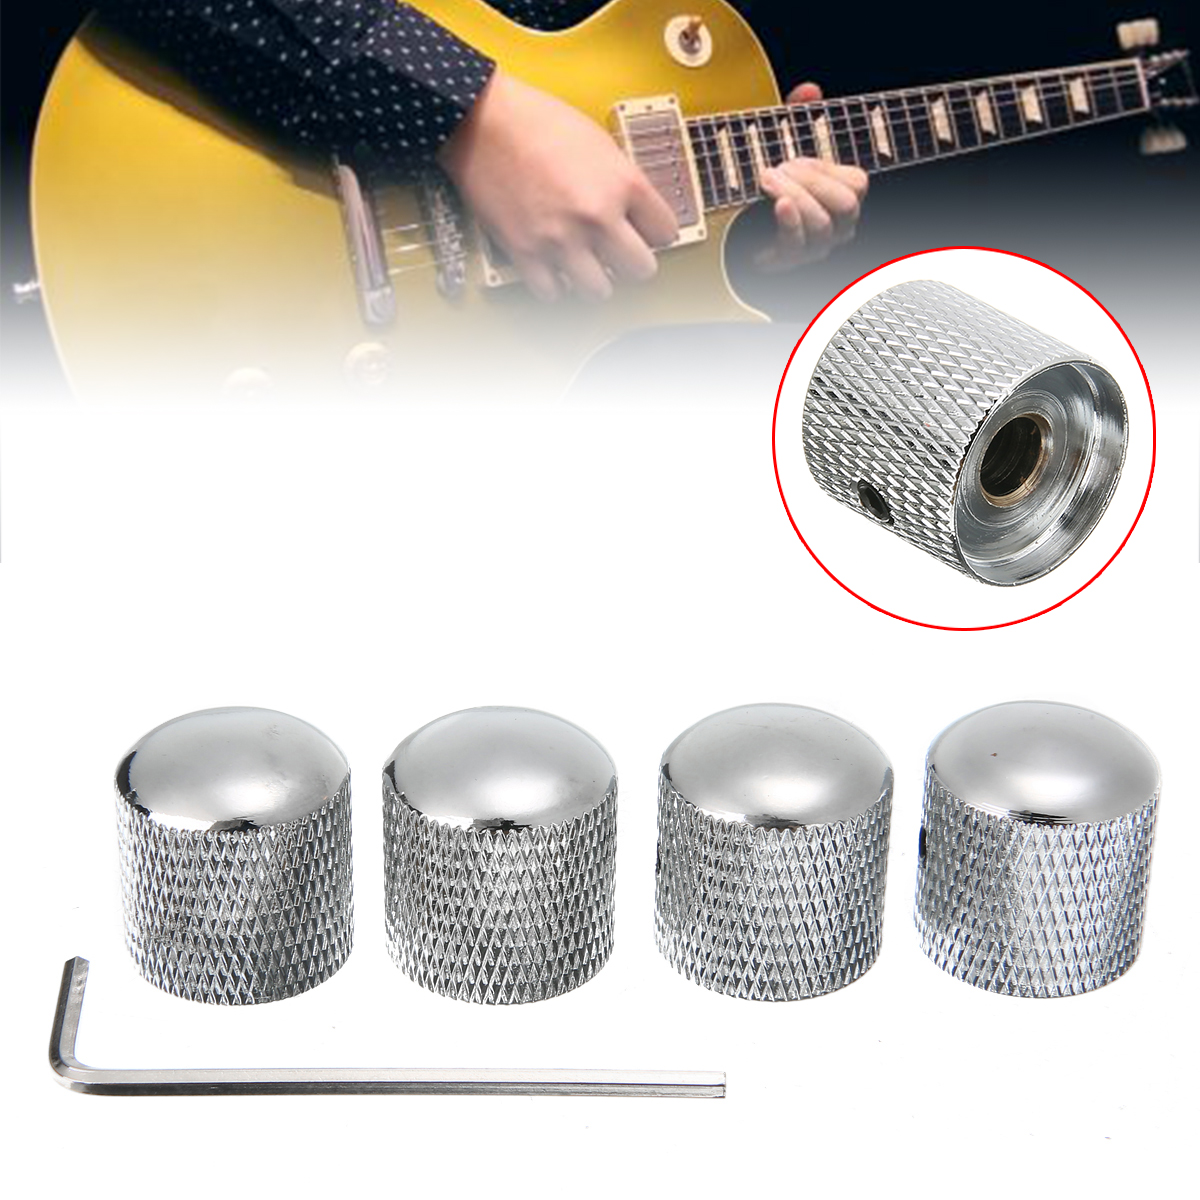 4pcs Silver Chrome Metal Tele Telecaster Guitar Dome Knobs Bass Knob + Wrench Volume Control Knobs Instruments Accessories